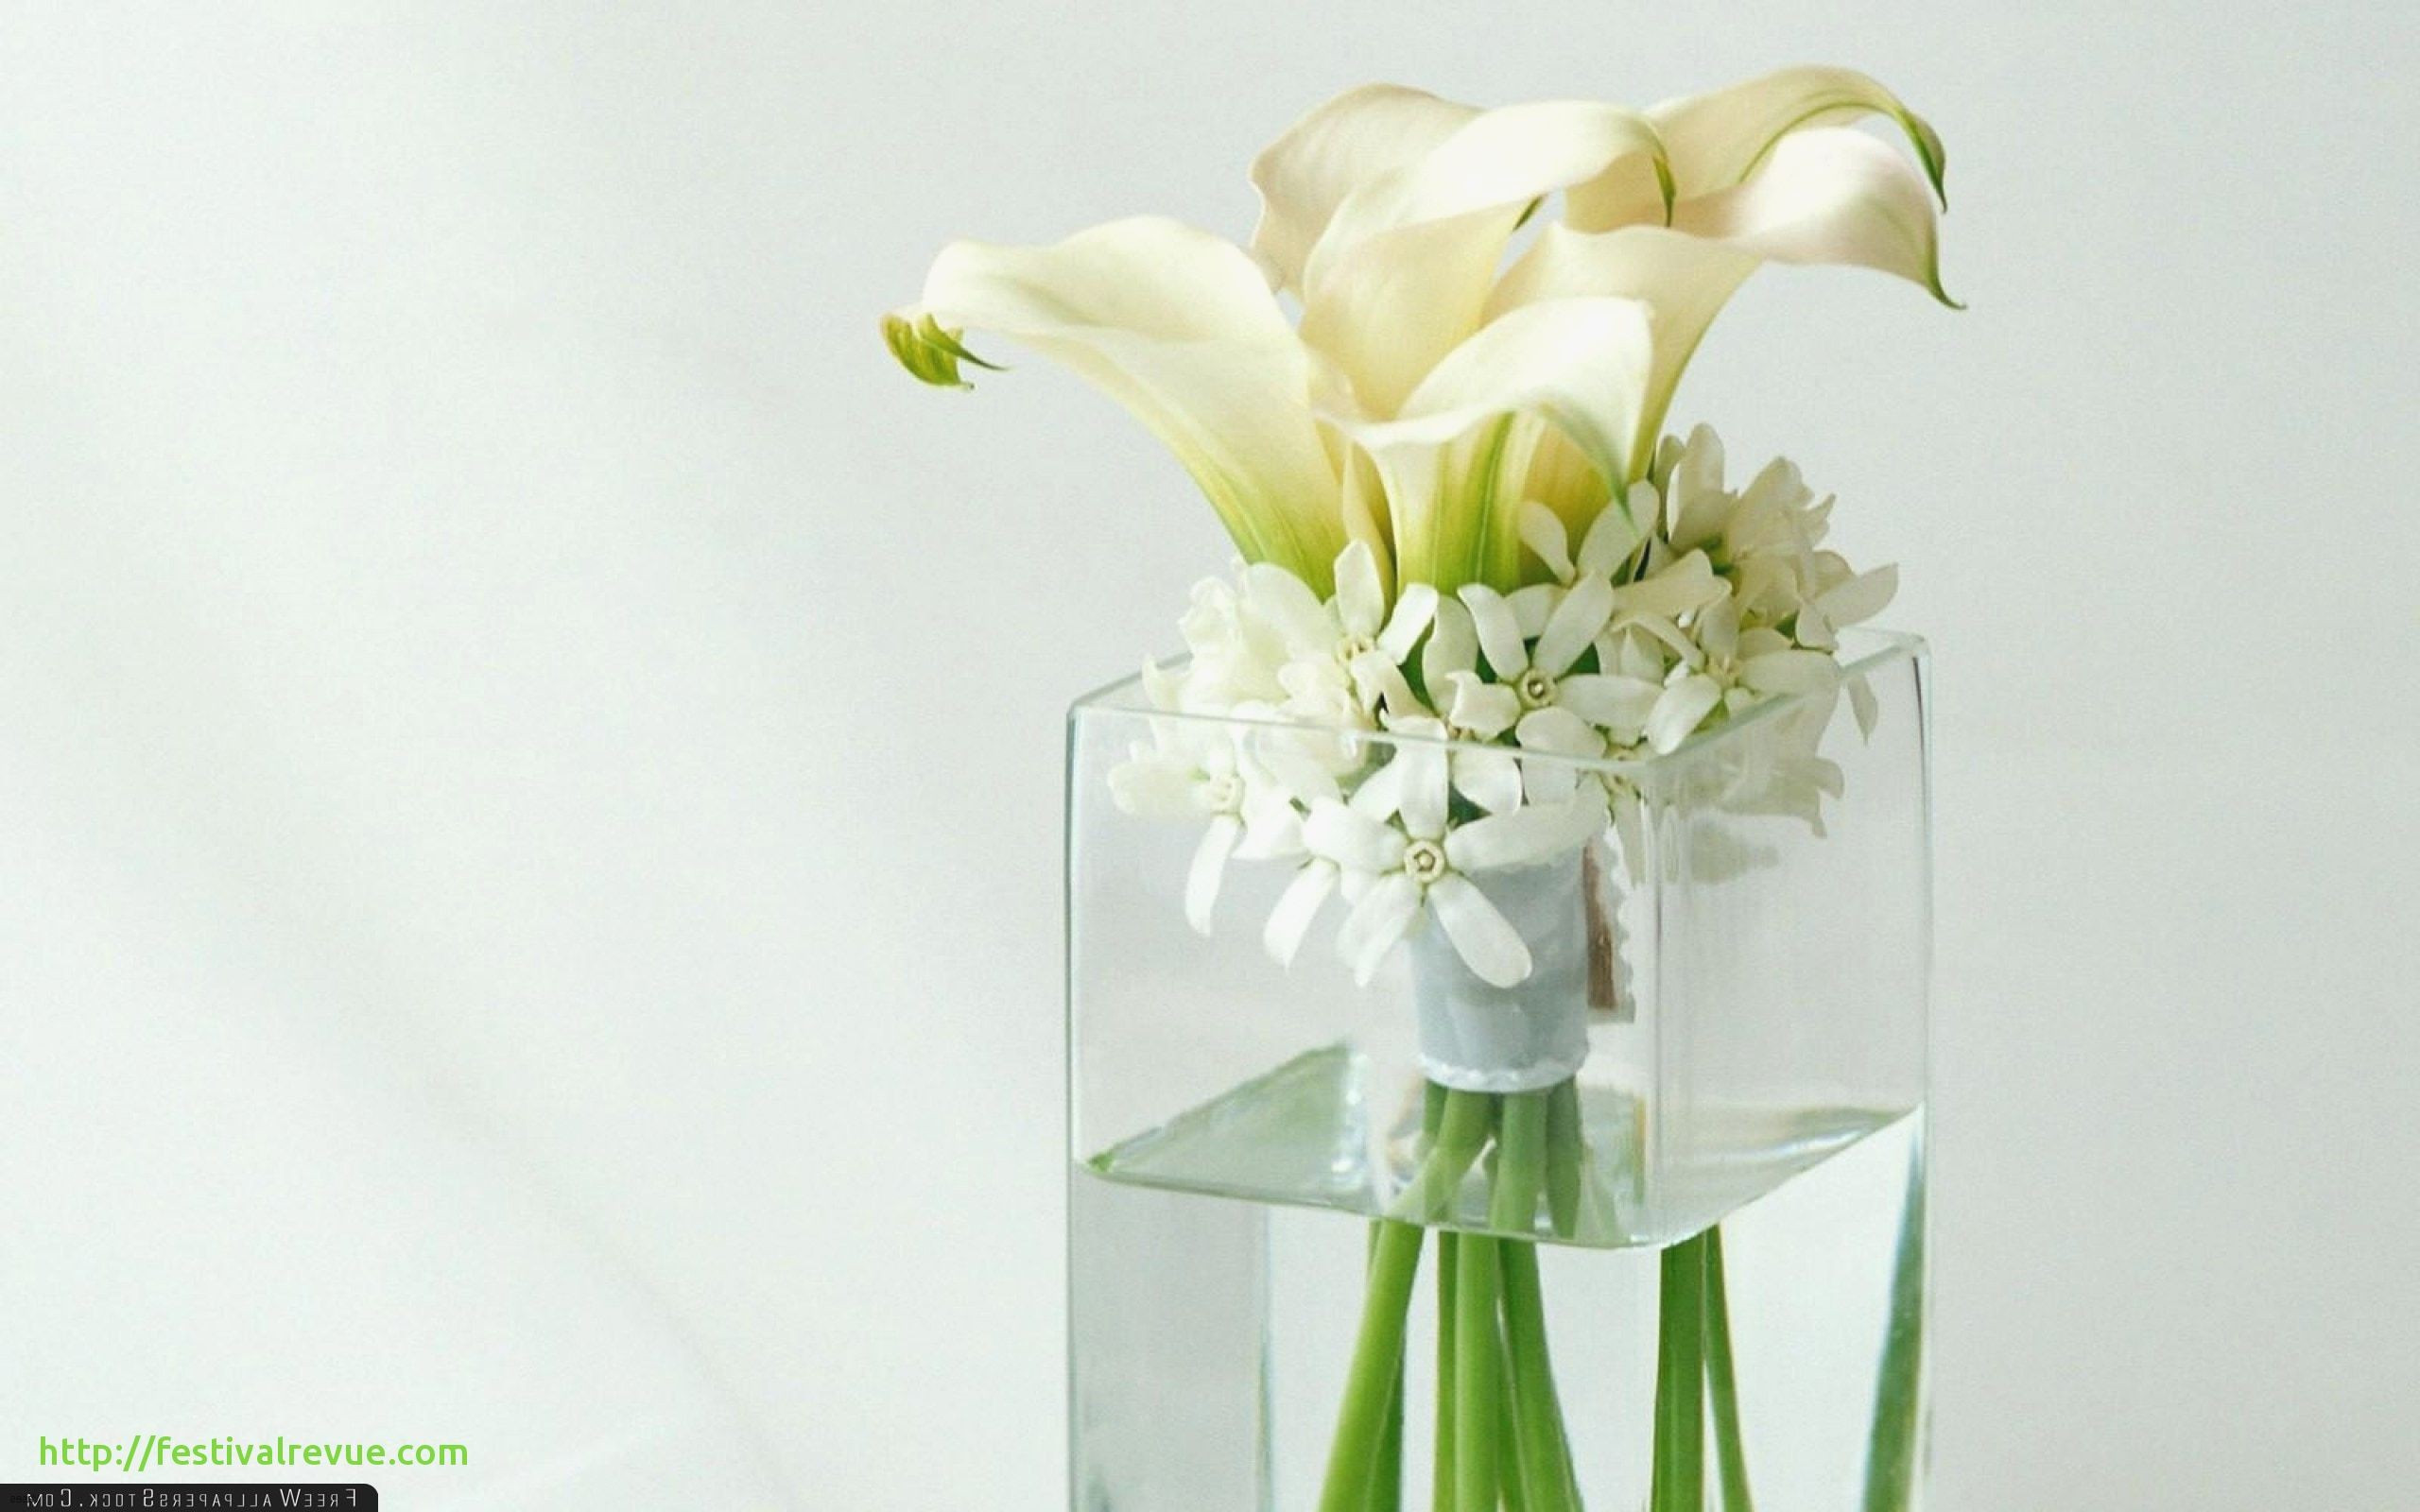 flower vase michaels of luxury fake flowers flowers wallpapers doyanqq me with regard to nature flowers white wallpaper new tall vase centerpiece ideas vases flowers in water 0d artificial